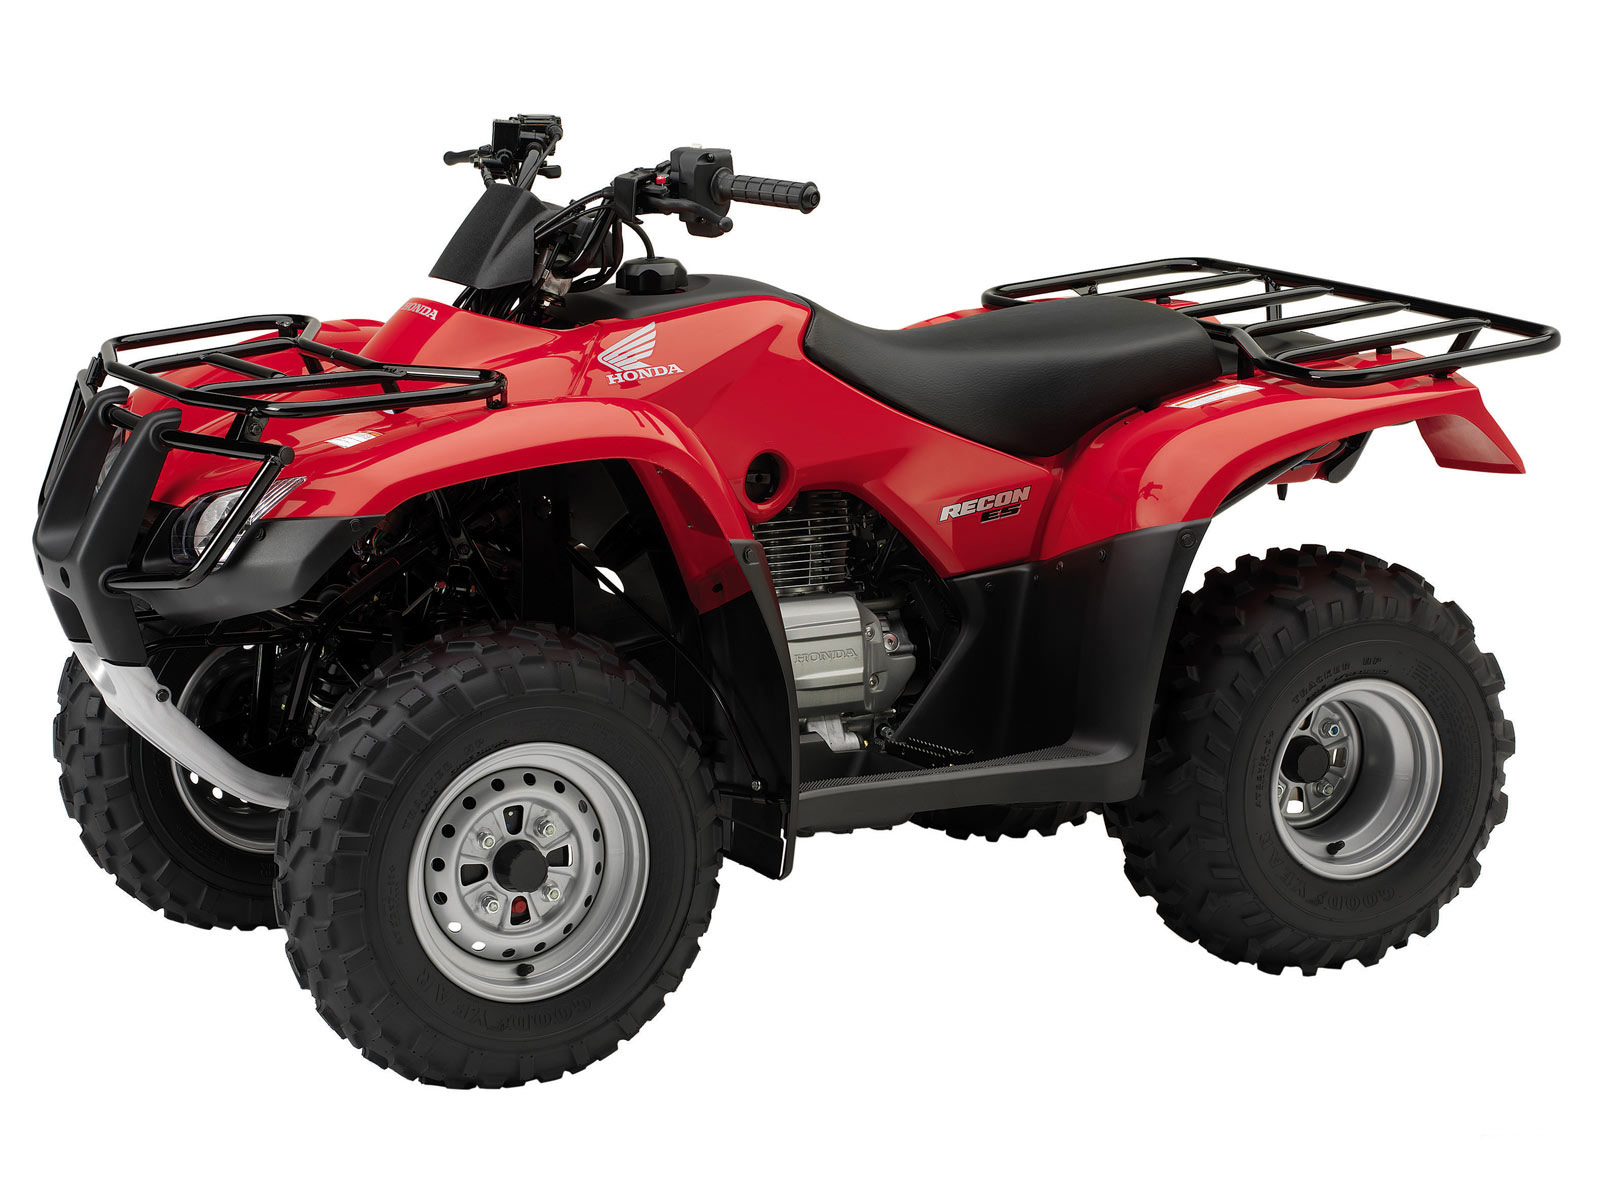 2008 honda fourtrax recon es atv wallpapers. Black Bedroom Furniture Sets. Home Design Ideas